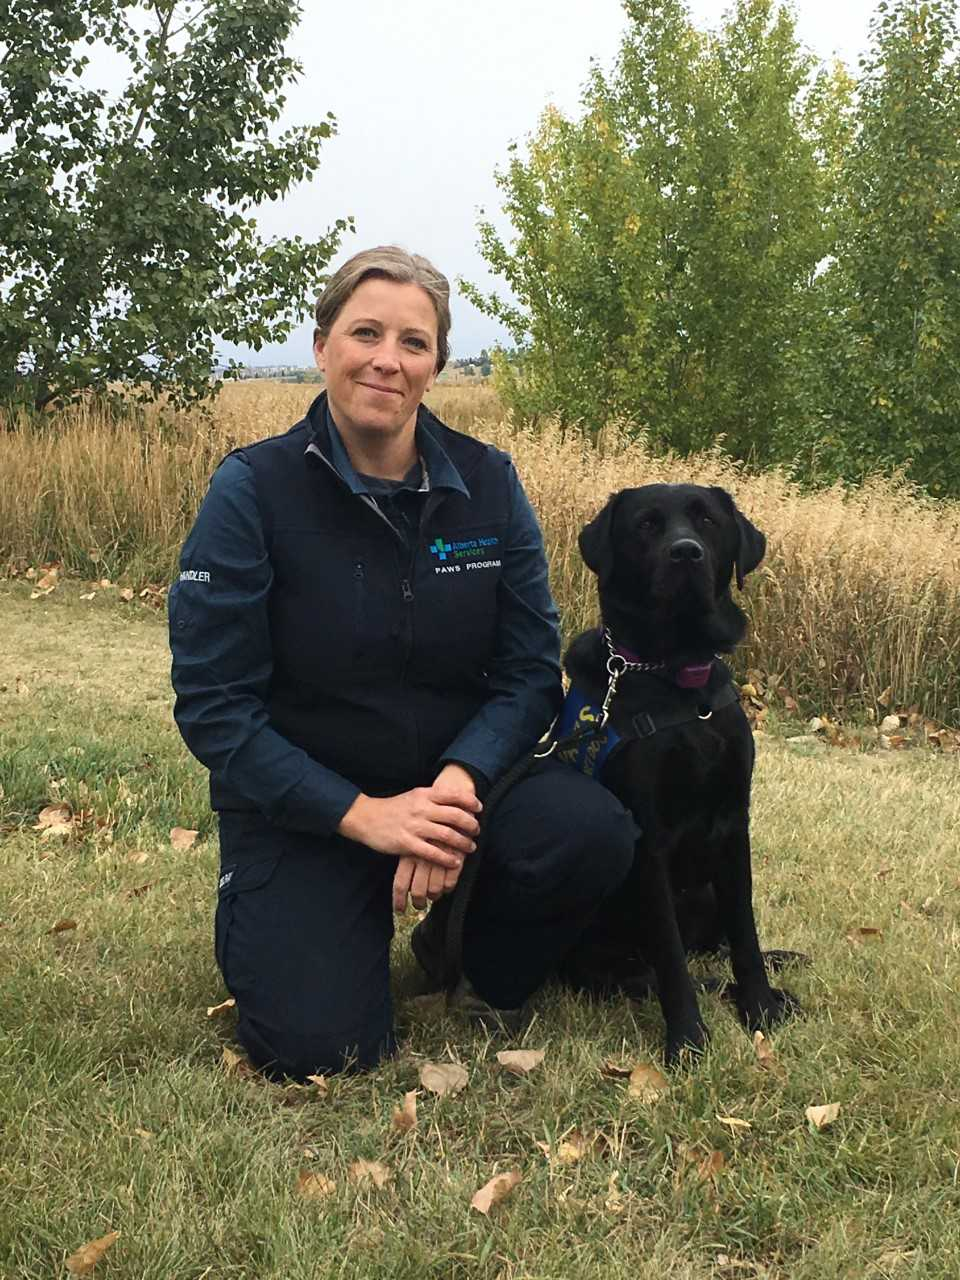 PARAMEDICS TO BENEFIT FROM THE NEW PAWS PROGRAM